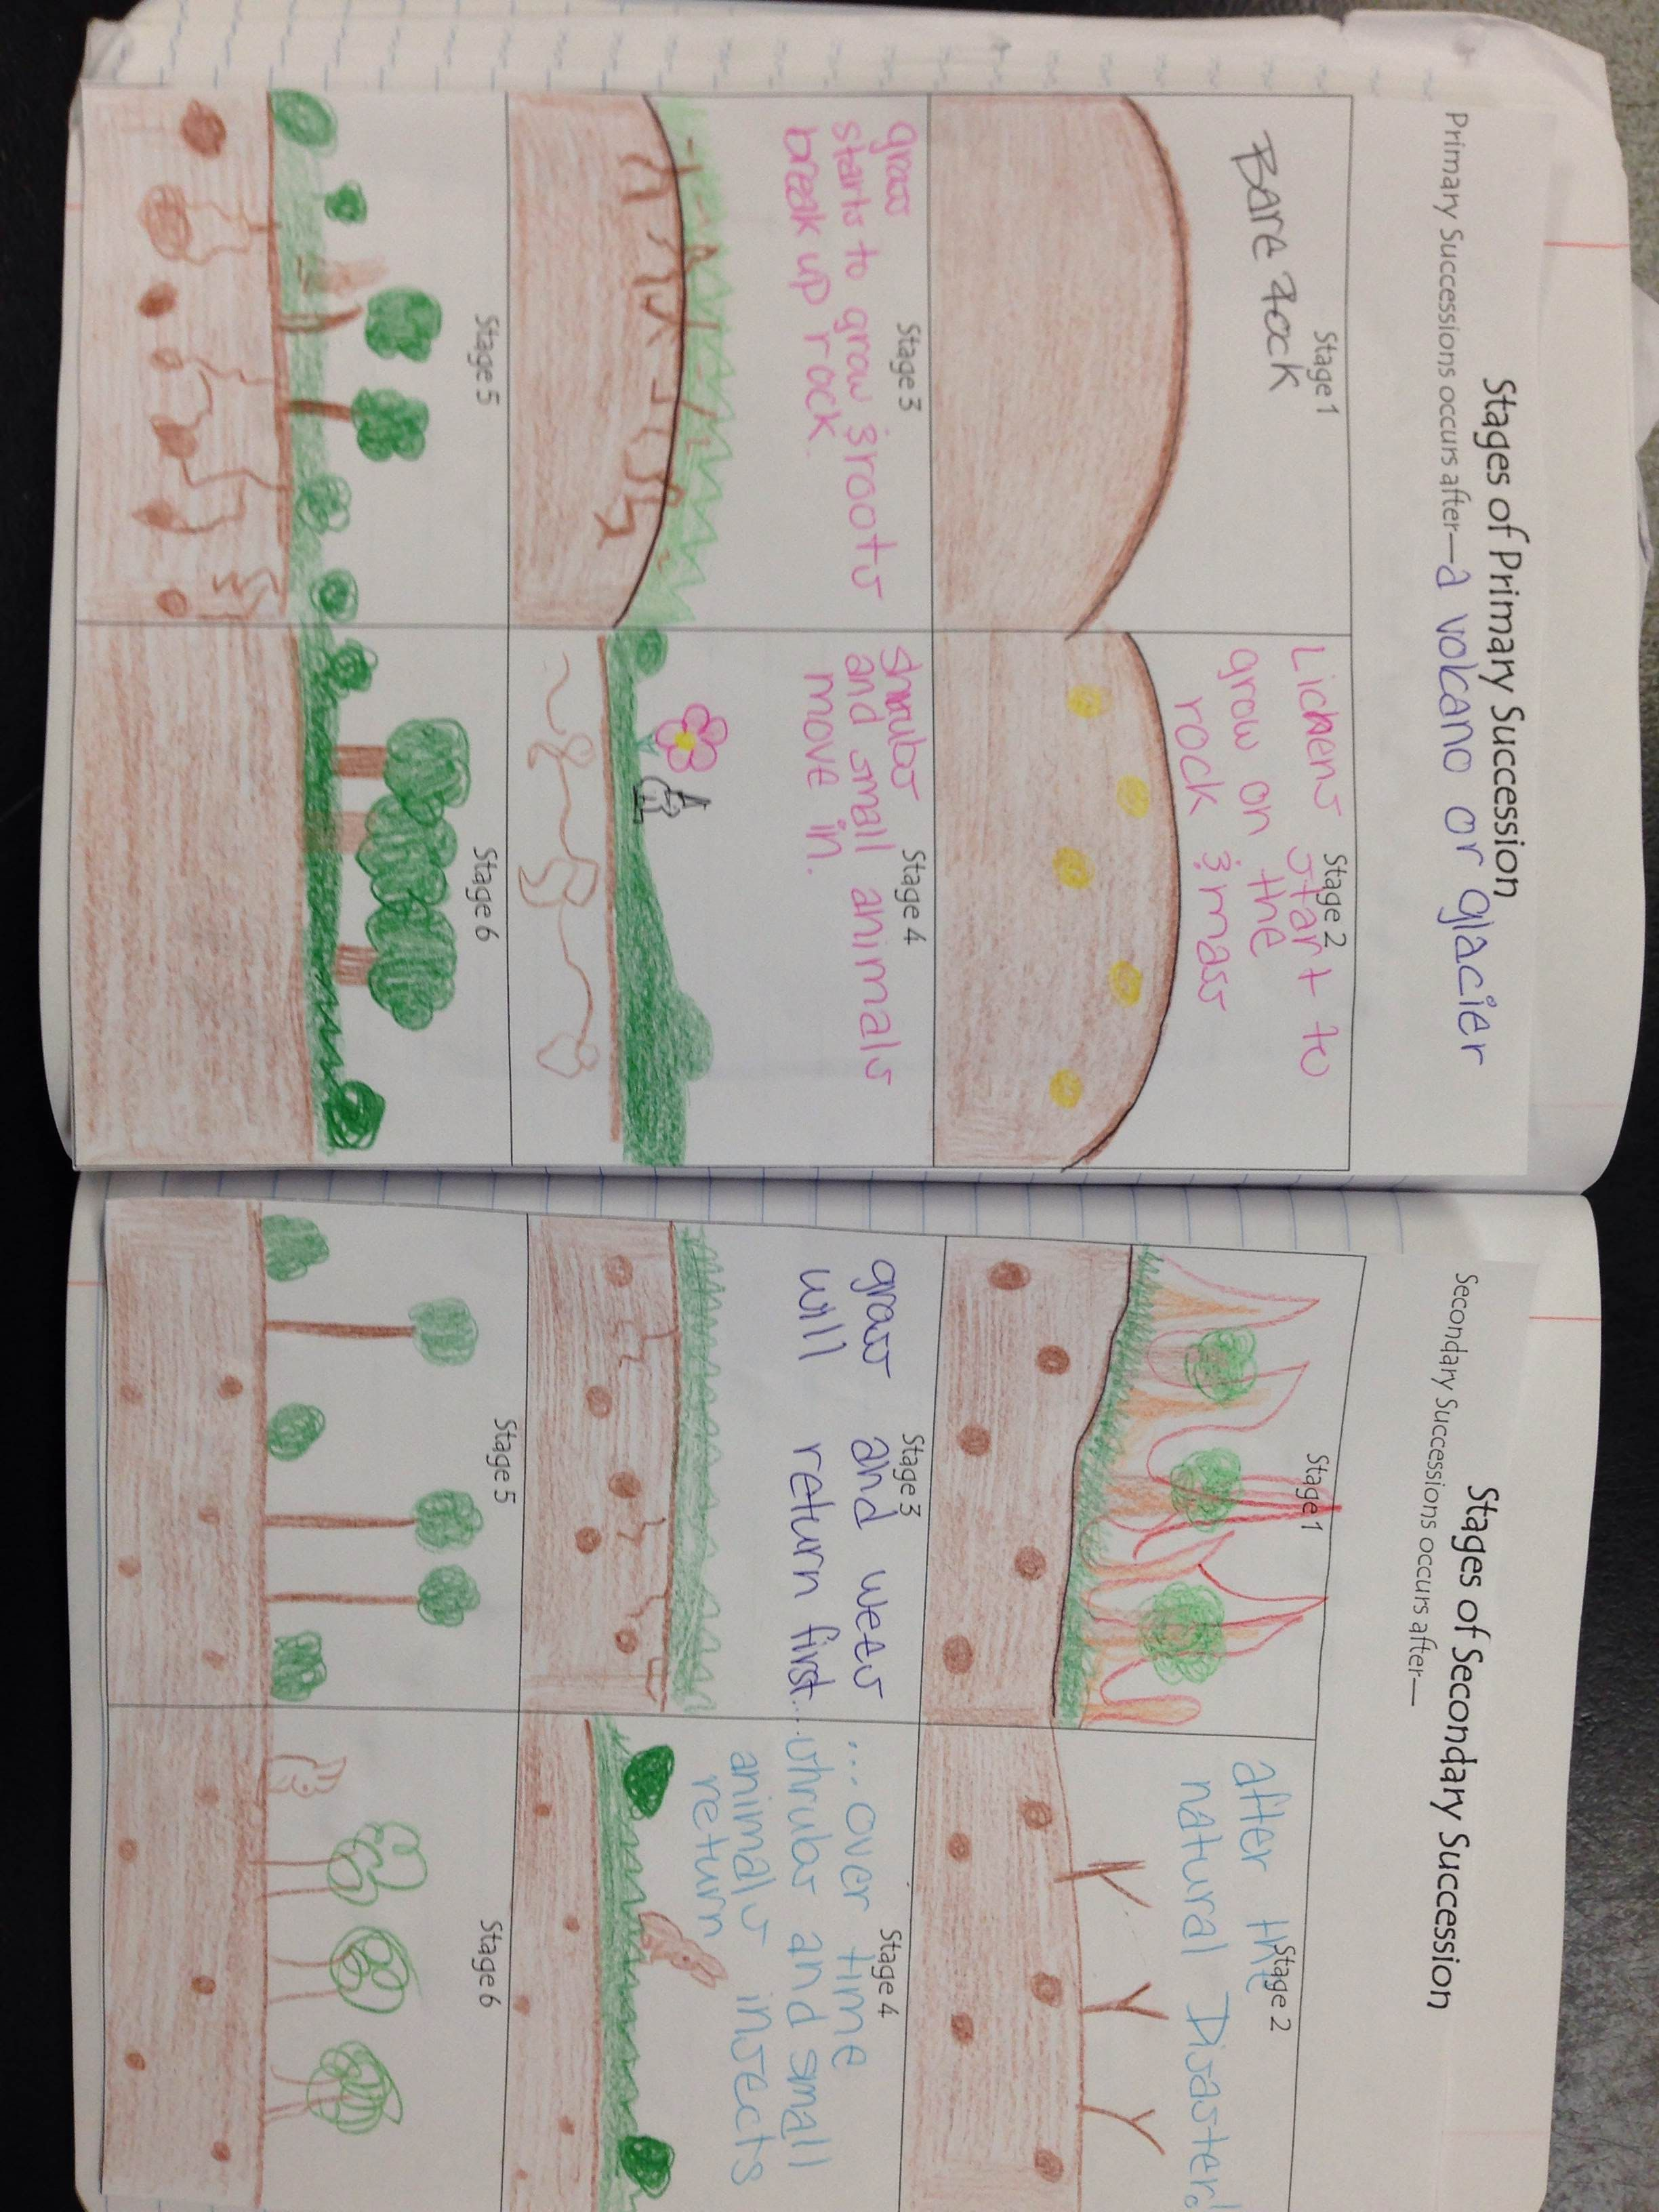 Secondary Succession Diagram World Of Reference